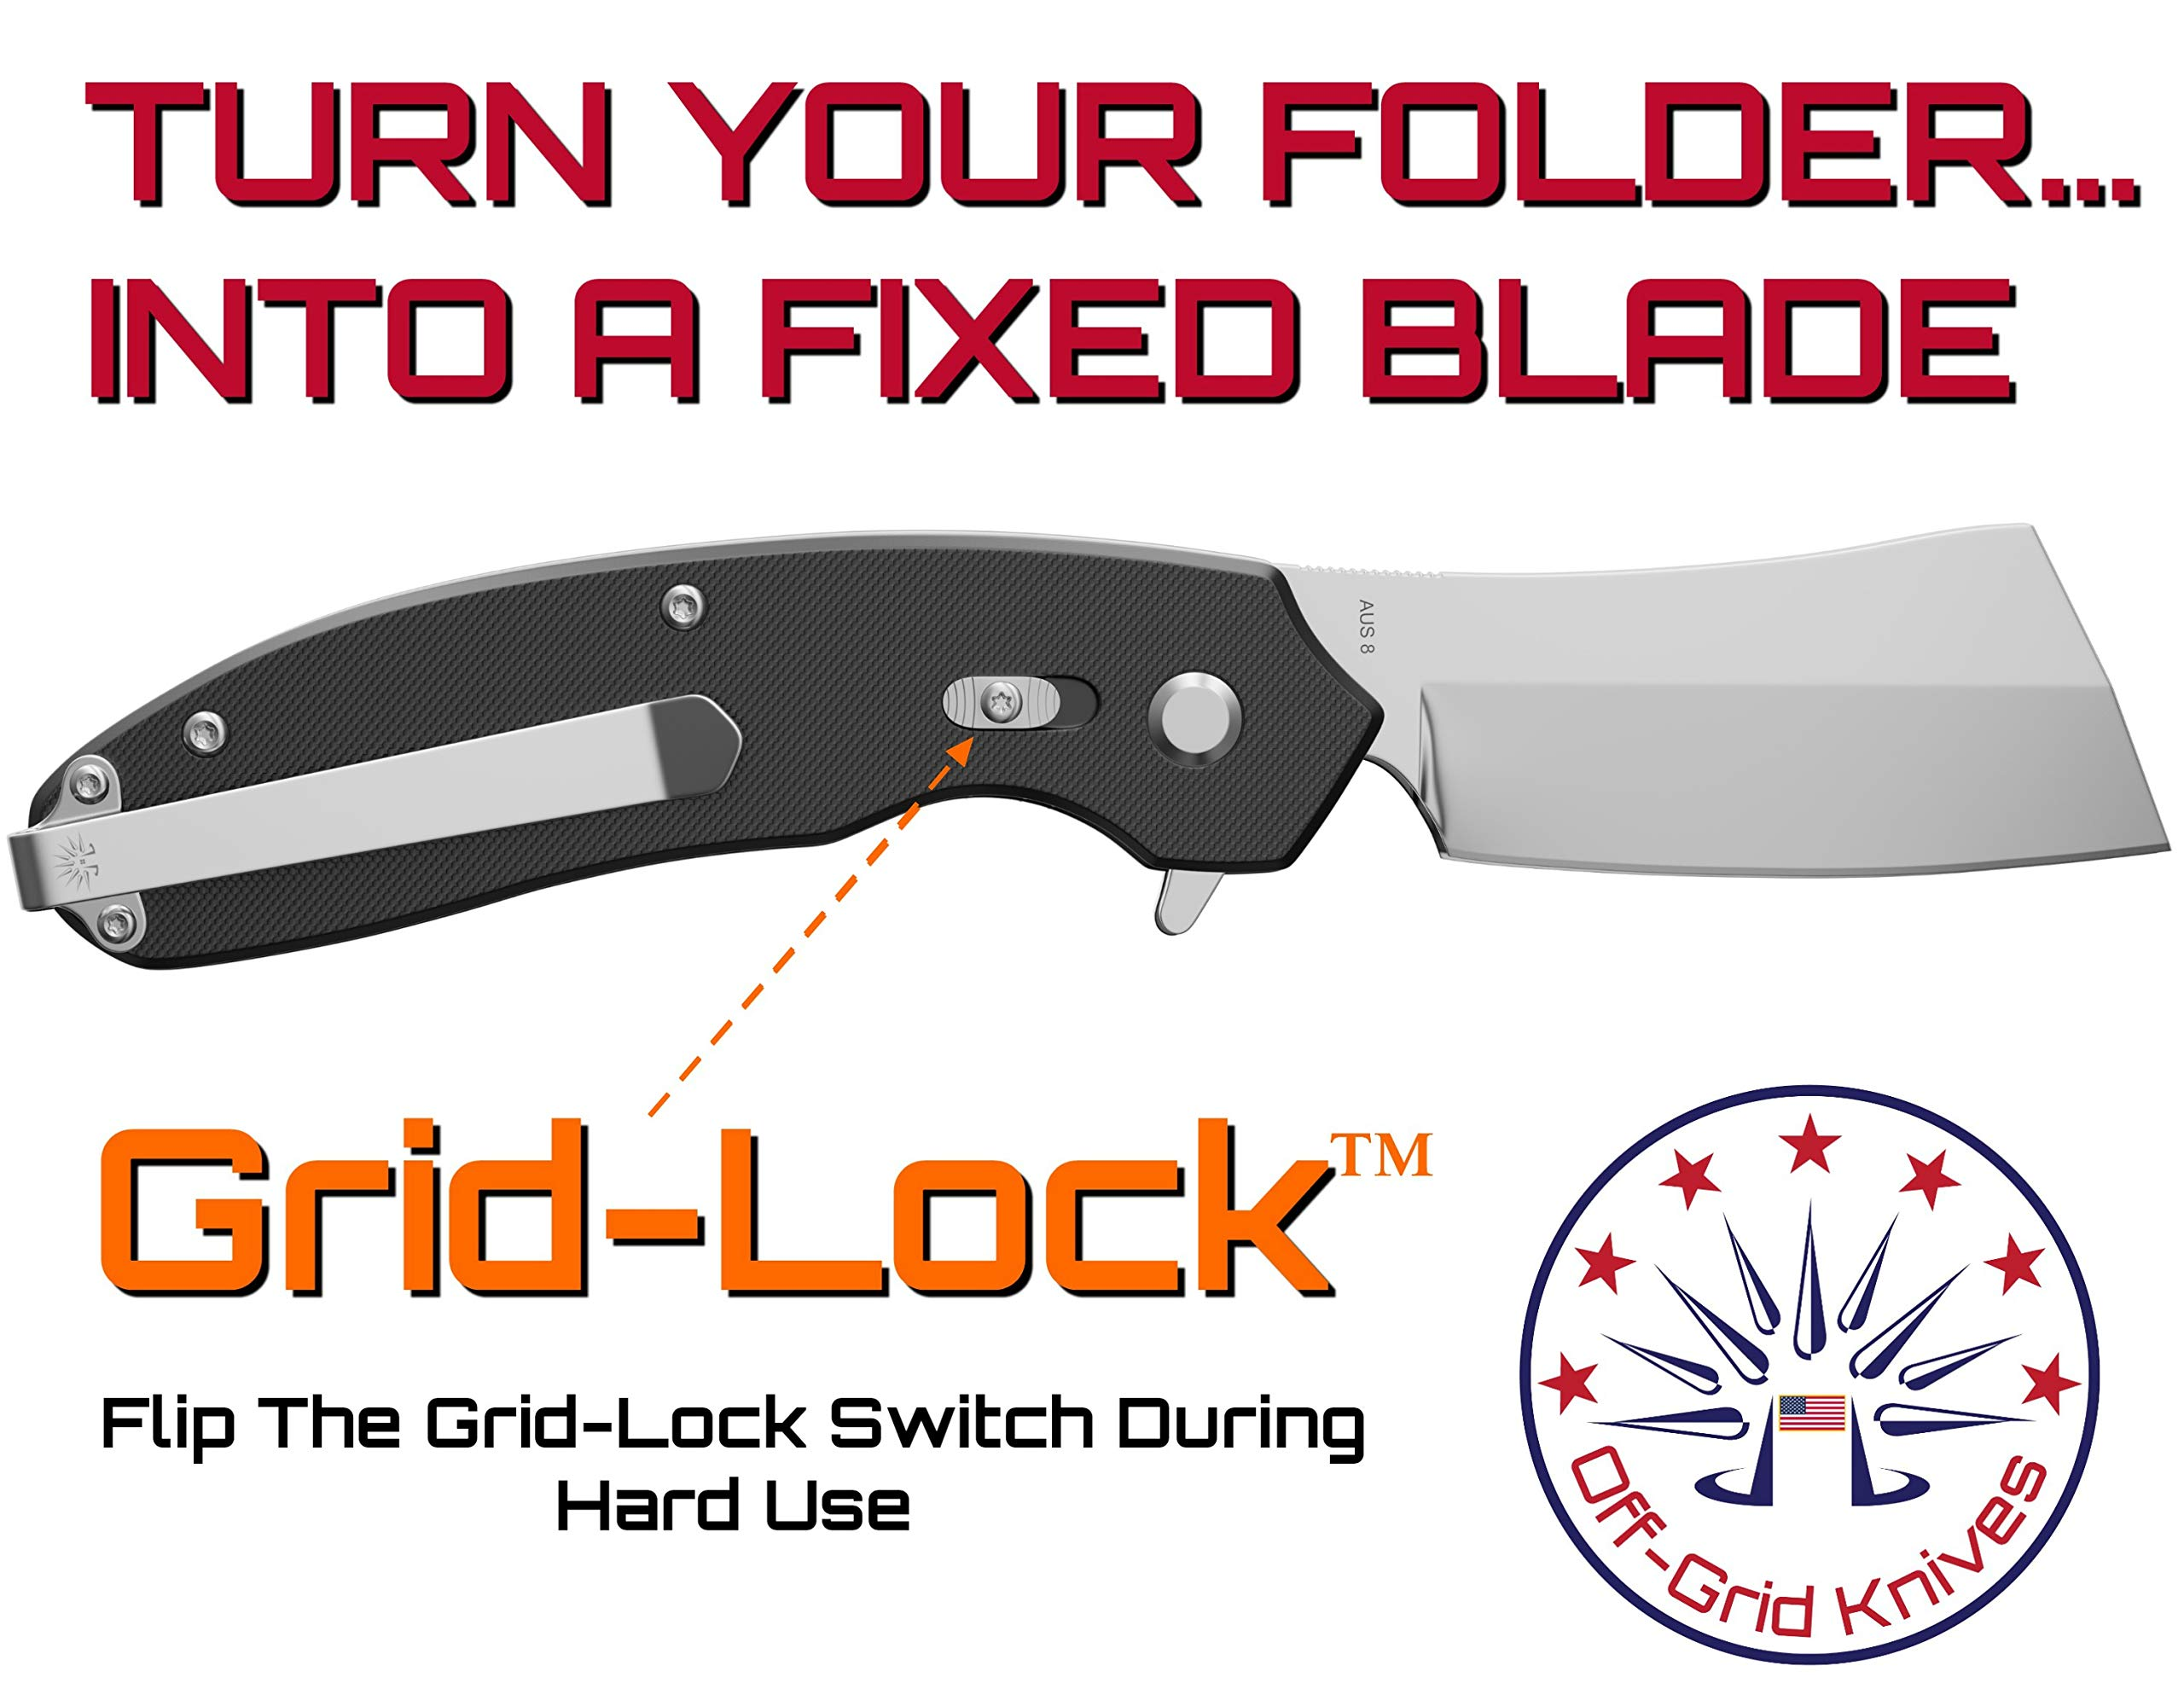 Off-Grid Knives - Cleaver Compact EDC Folding Knife, Satin Finish, Safety Grid-Lock Turns This Folder Into A Fixed Blade, Cryo AUS8 Blade Steel, G10 Handle & Tip-Up Reversible Deep Carry Pocket Clip by Off-Grid Knives (Image #3)